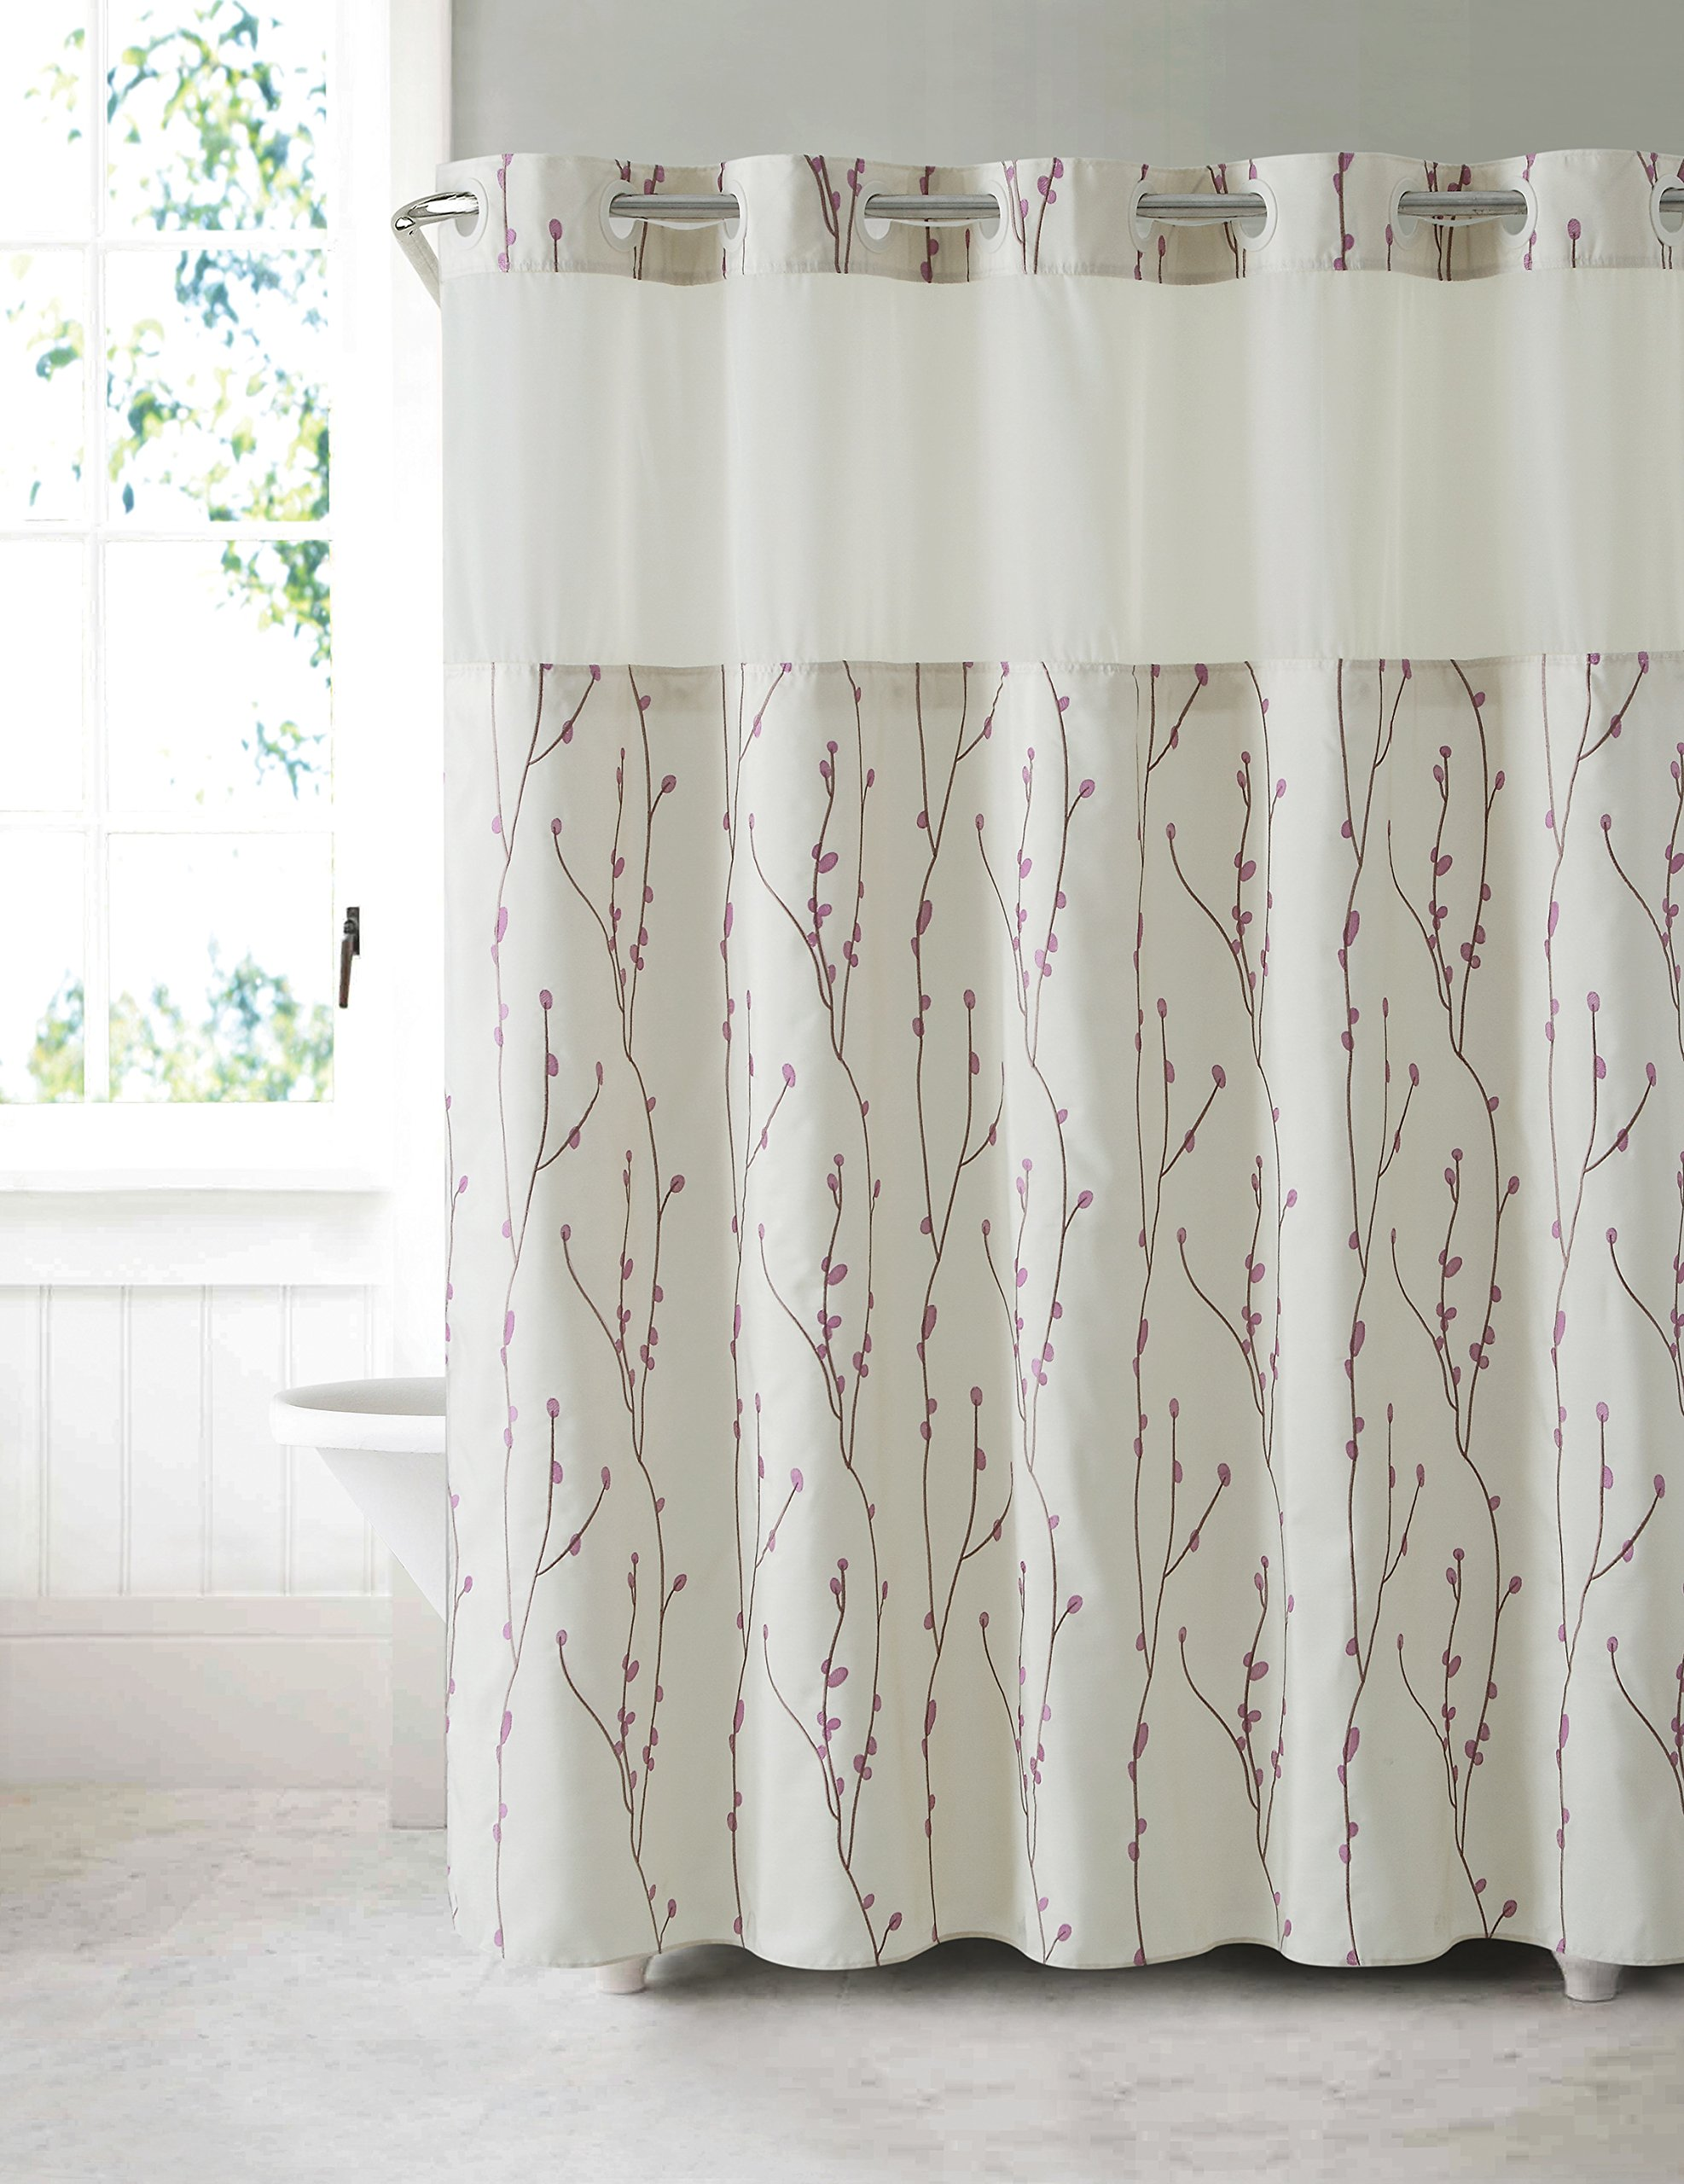 Details About Hookless RBH40MY079 Cherry Bloom Shower Curtain With PEVA Liner